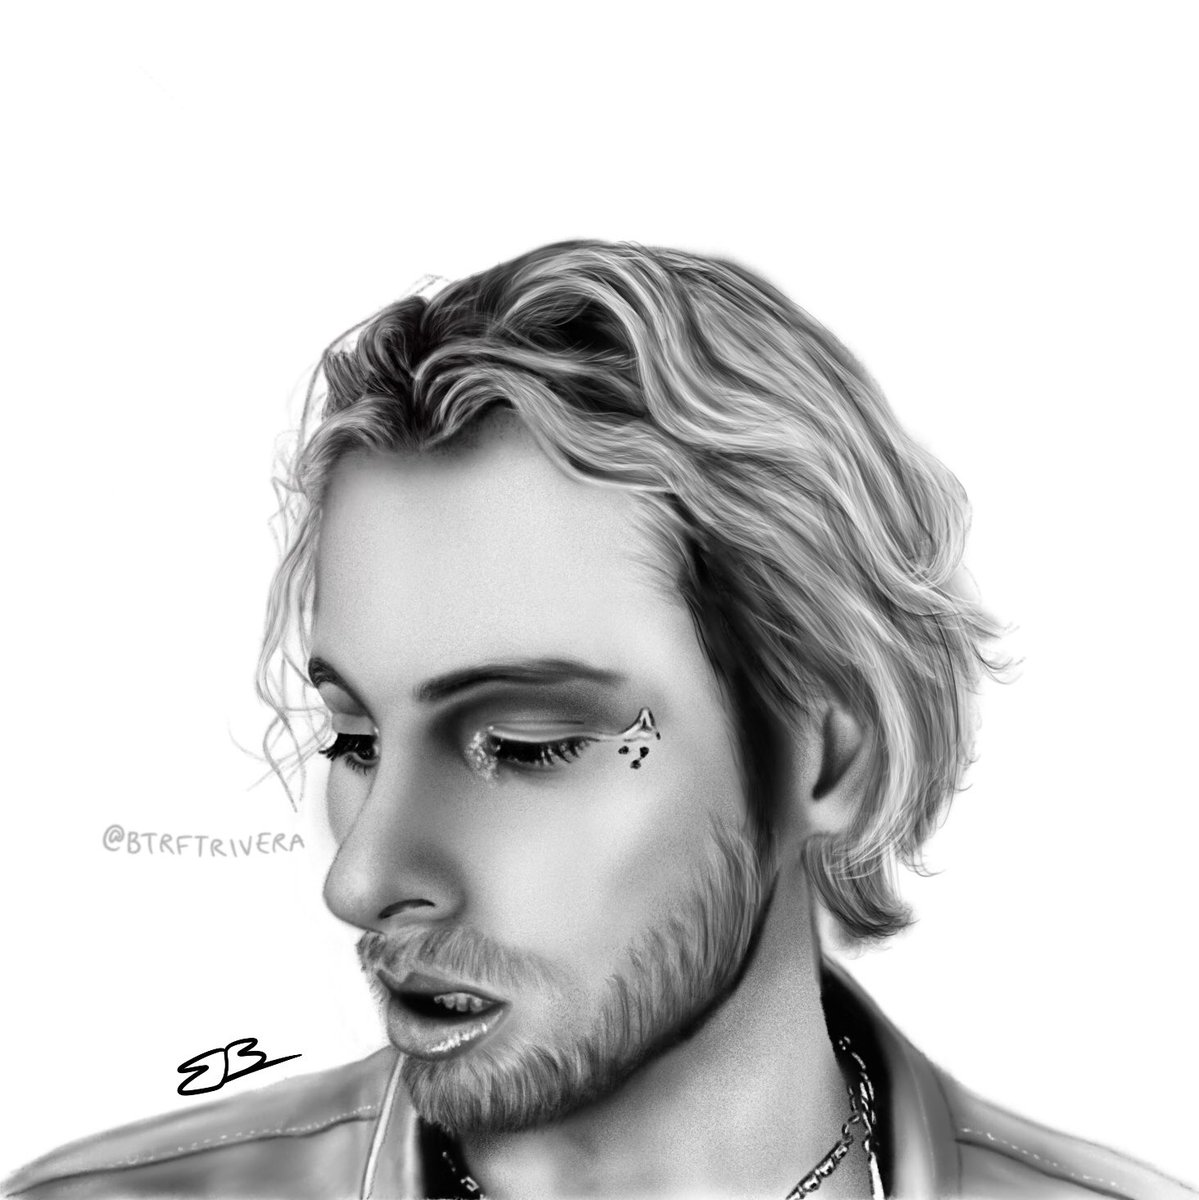 Took only 4 hours cuz it was a smaller picture but I finally finished it! Let me know what you think! 🥺❤️ @Luke5SOS @5SOS  #5sos #CALM #5sosCALM